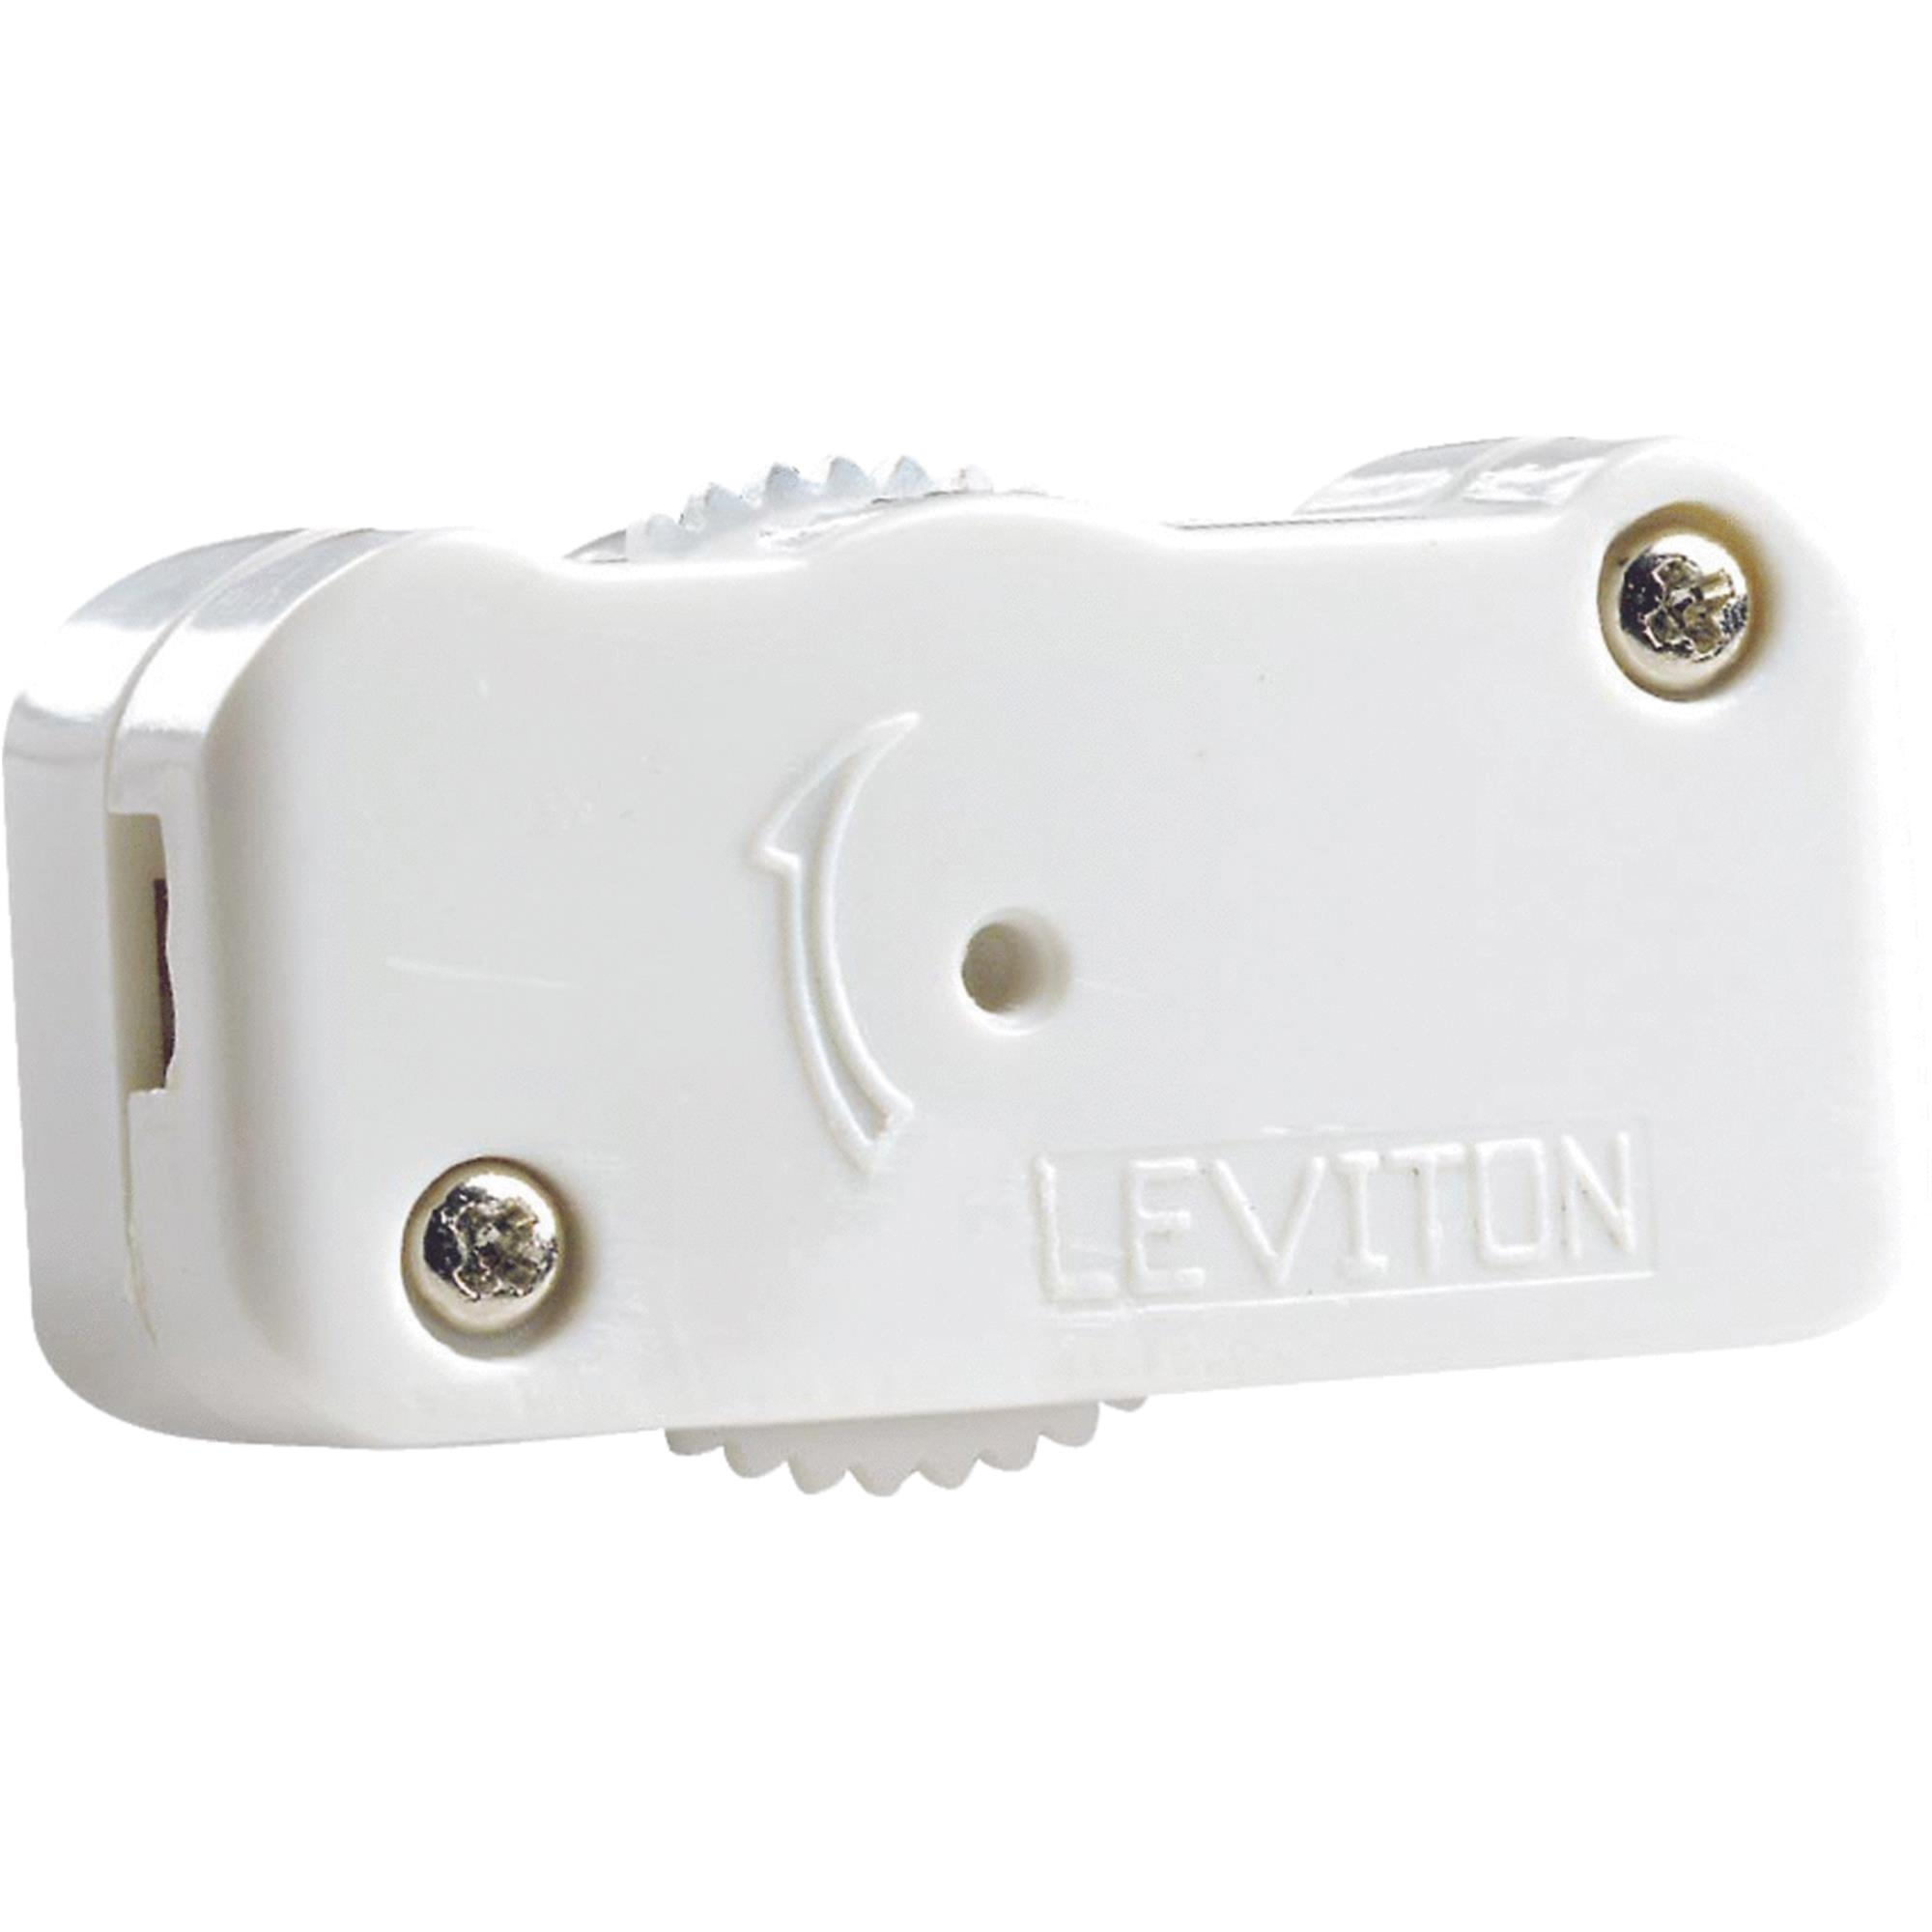 Lamp Cord Dimmer Control by Leviton Mfg